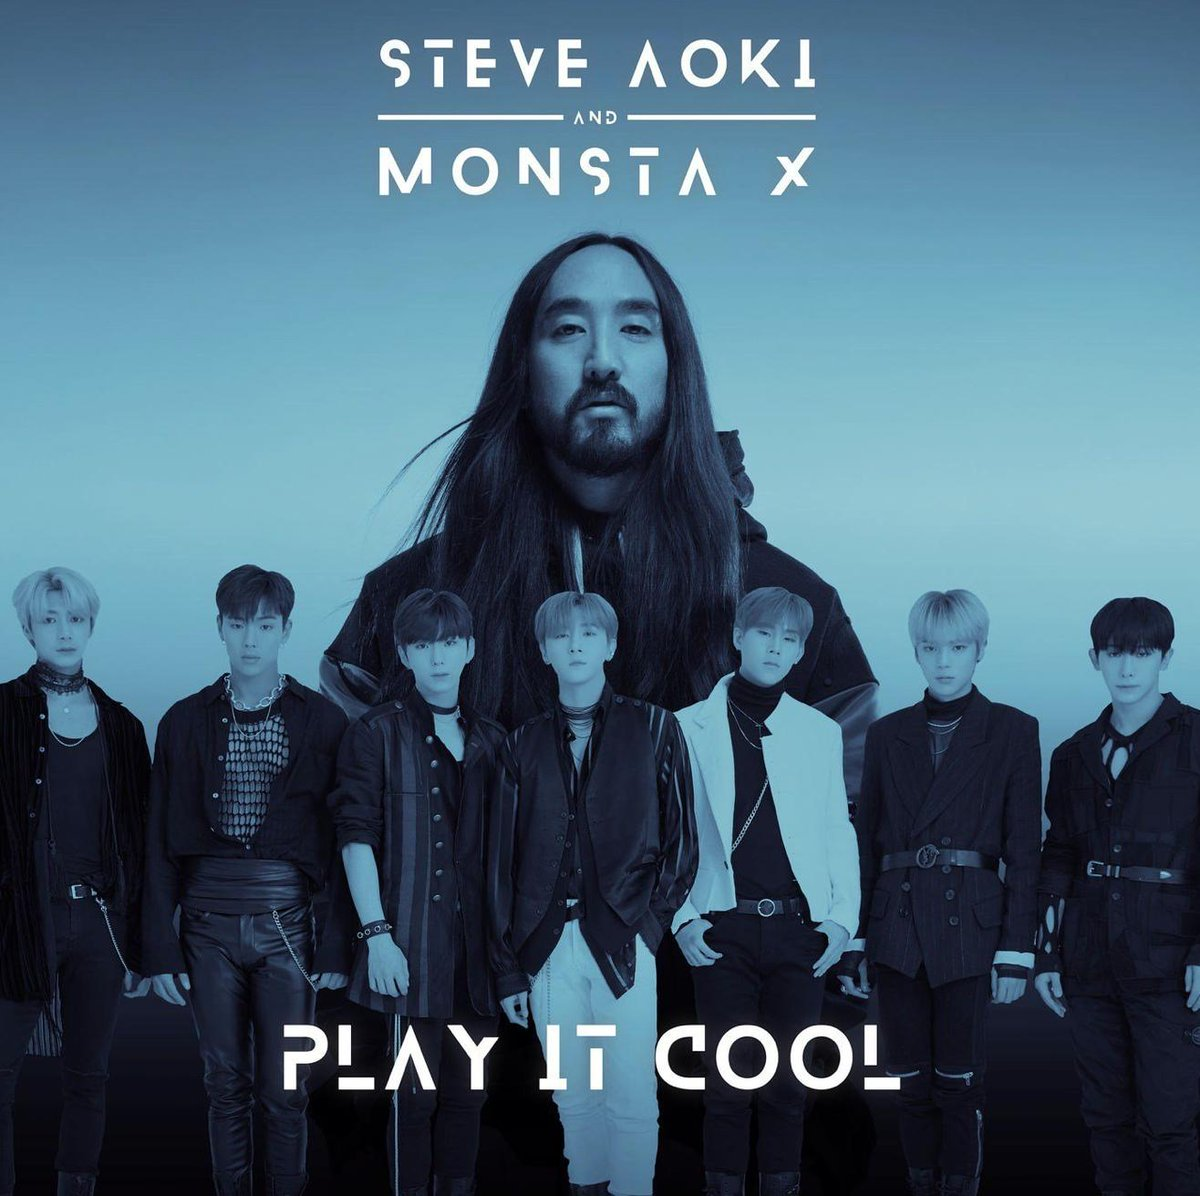 K-Pop Kings @OfficialMonstaX &amp; super-producer @steveaoki heat up this week&#39;s New Music Friday with an English-language version of &quot;Play It Cool&quot;:  https:// idola.to/2FkpvH4  &nbsp;  <br>http://pic.twitter.com/4AZey0TQ2H